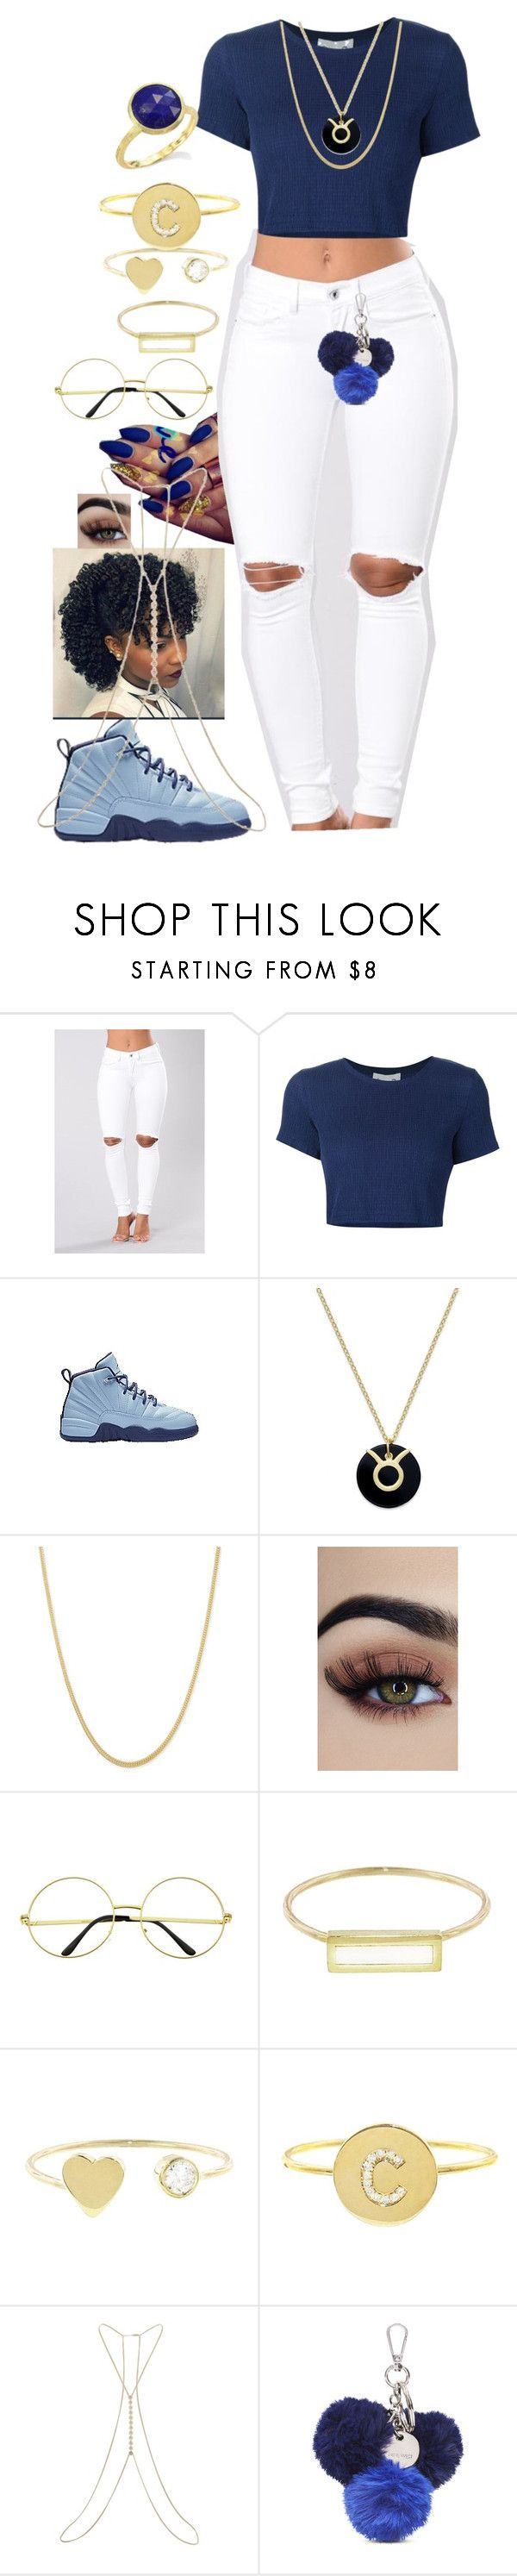 """""""BlueHighness"""" by queen-sugah900 ❤ liked on Polyvore featuring Sea, New York, Giani Bernini, Jennifer Meyer Jewelry, Miss Selfridge, Nine West and Marco Bicego"""